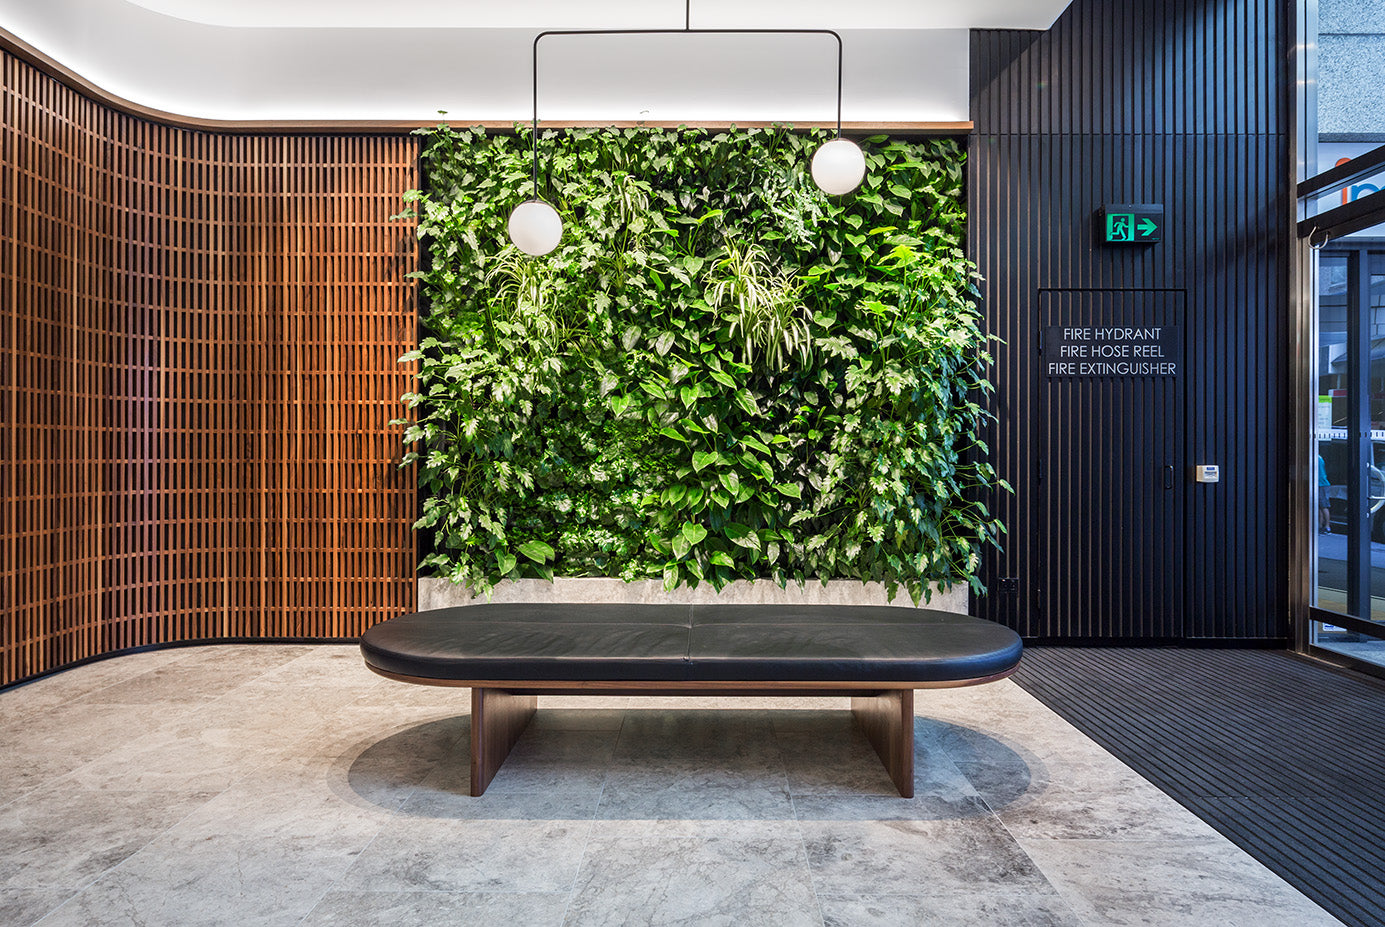 Vertical Garden designed by Greenwall Solutions using Green4Air vertical green wall system